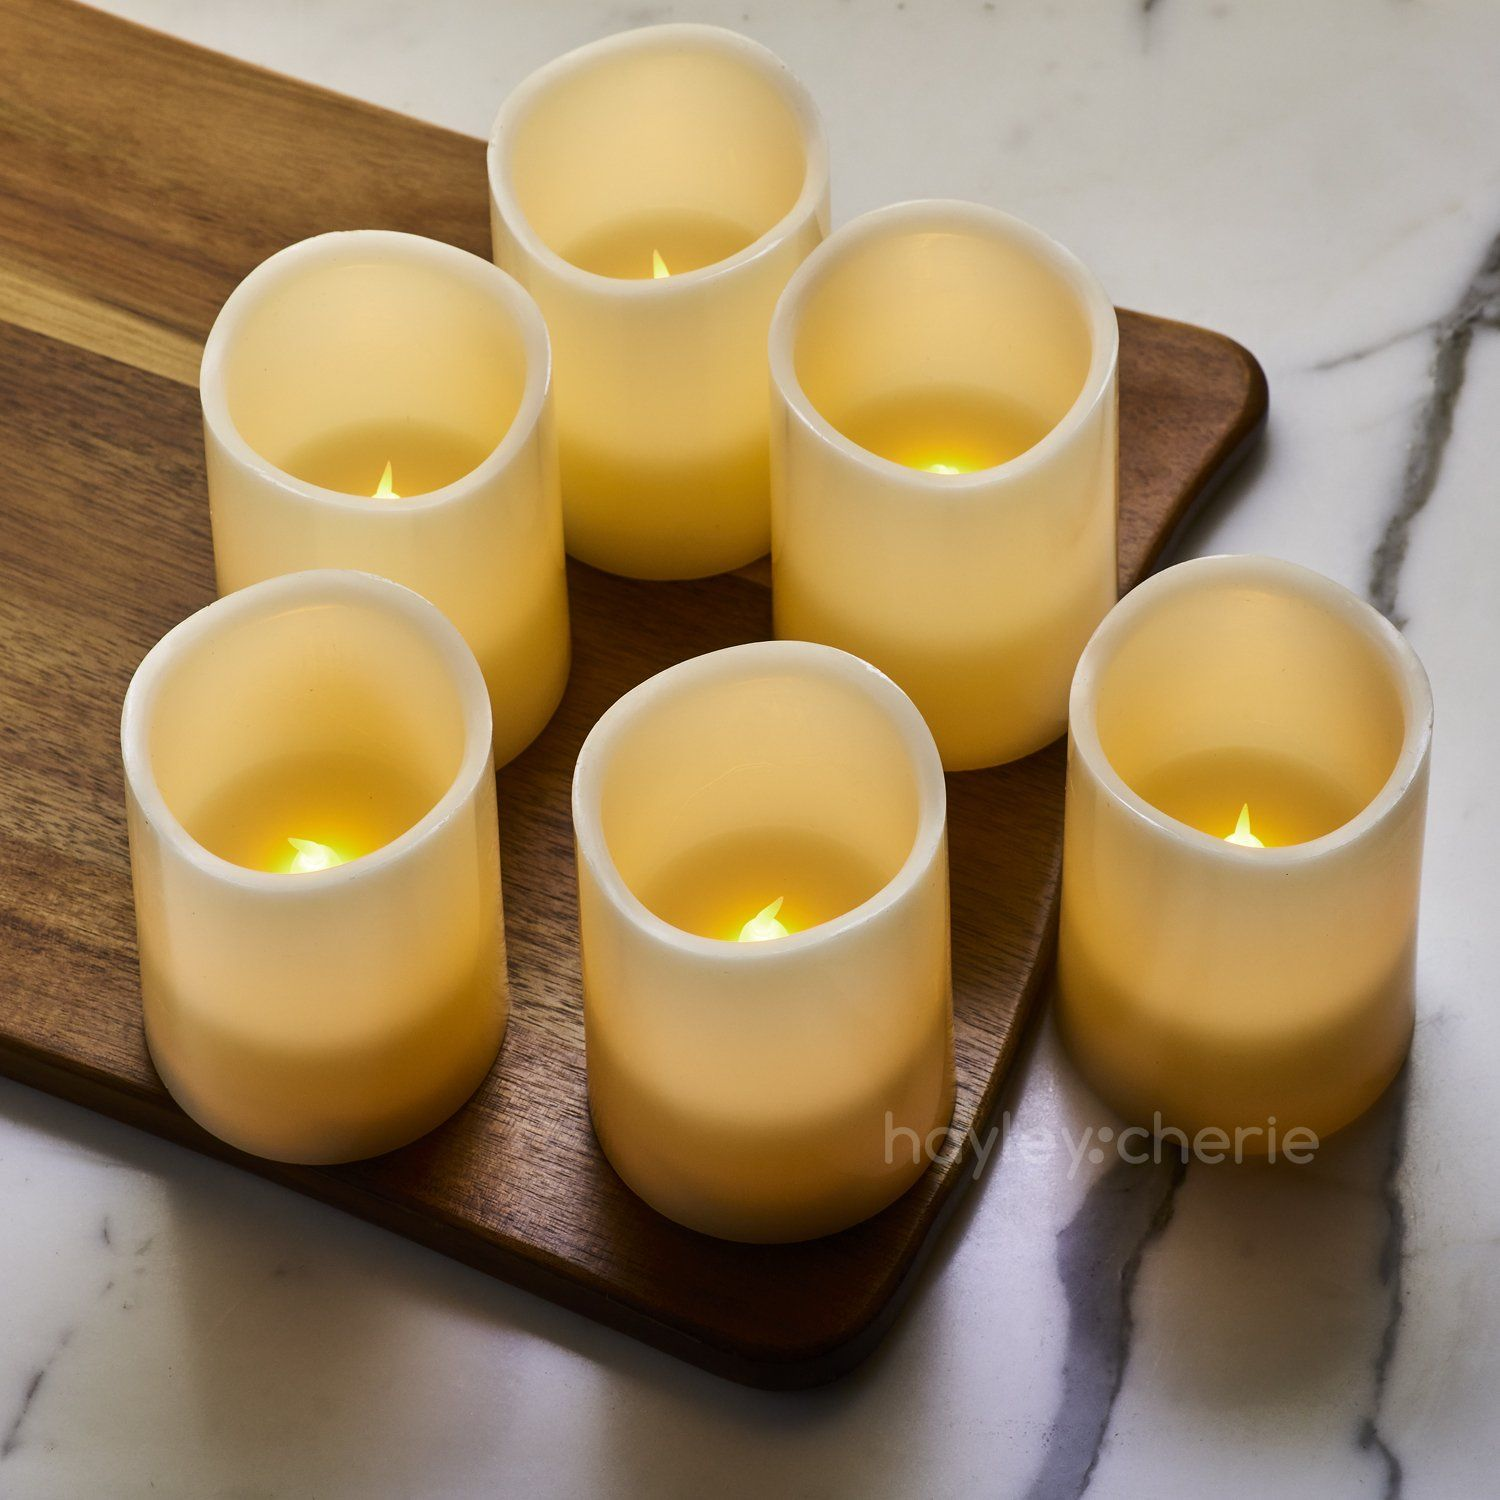 Hayley cherie real wax flameless candles with timer set of